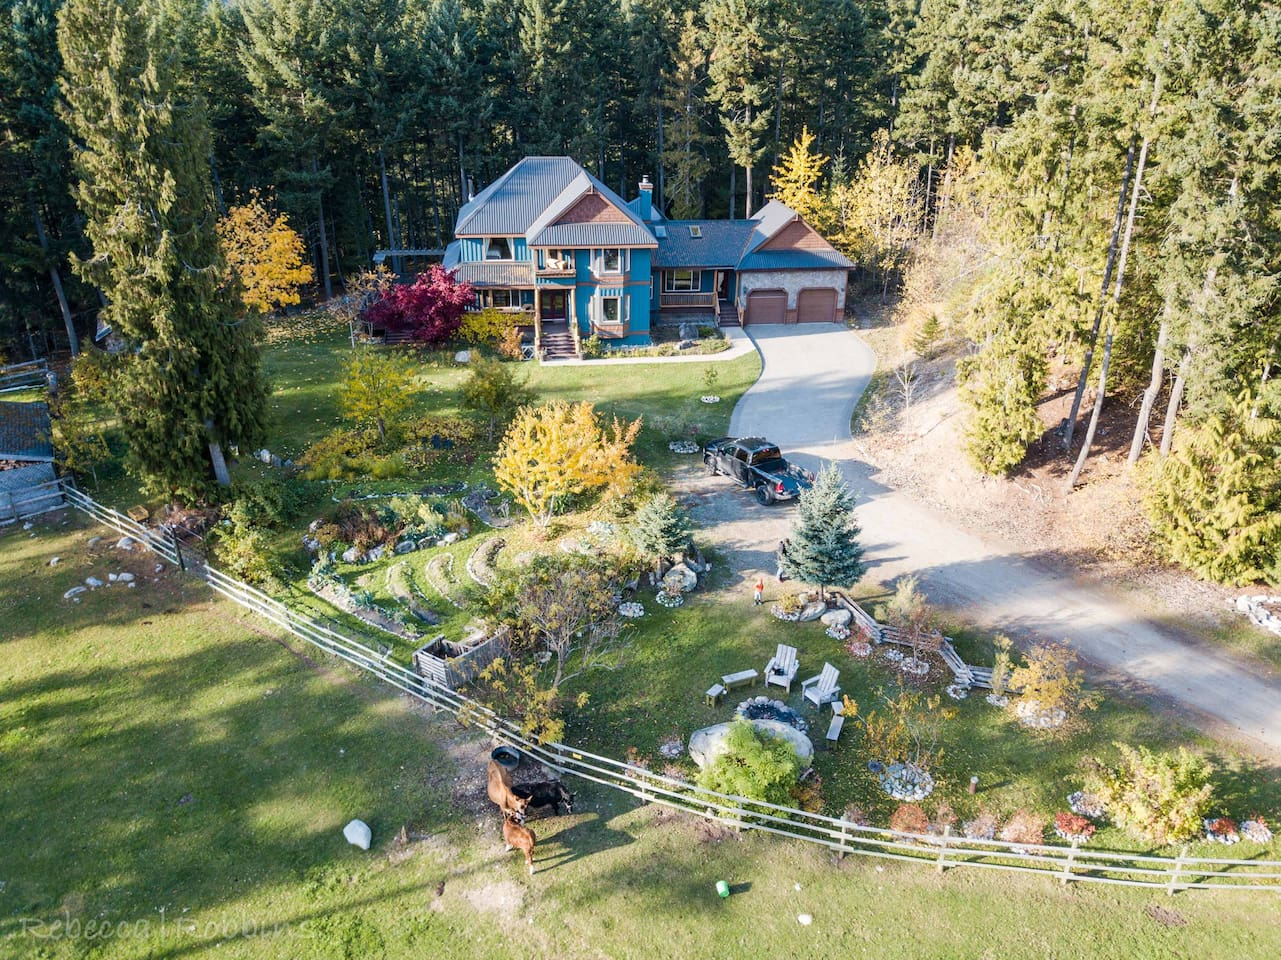 aerial image of the firepit, garden and main house